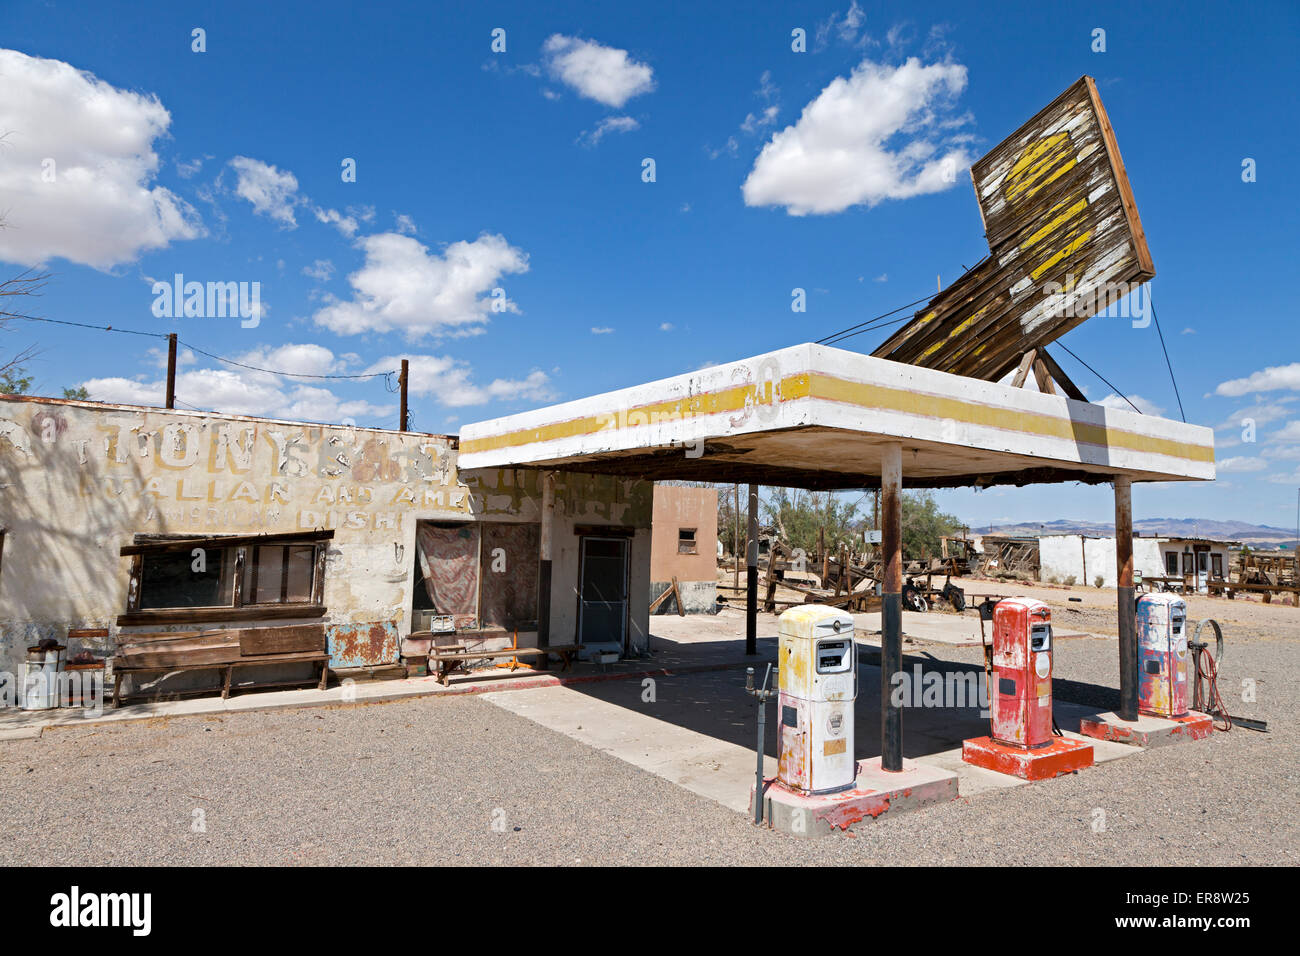 Abandoned Dry Creek Whiting Bros Gas Station And Diner Along Route 66 Stock Photo Alamy